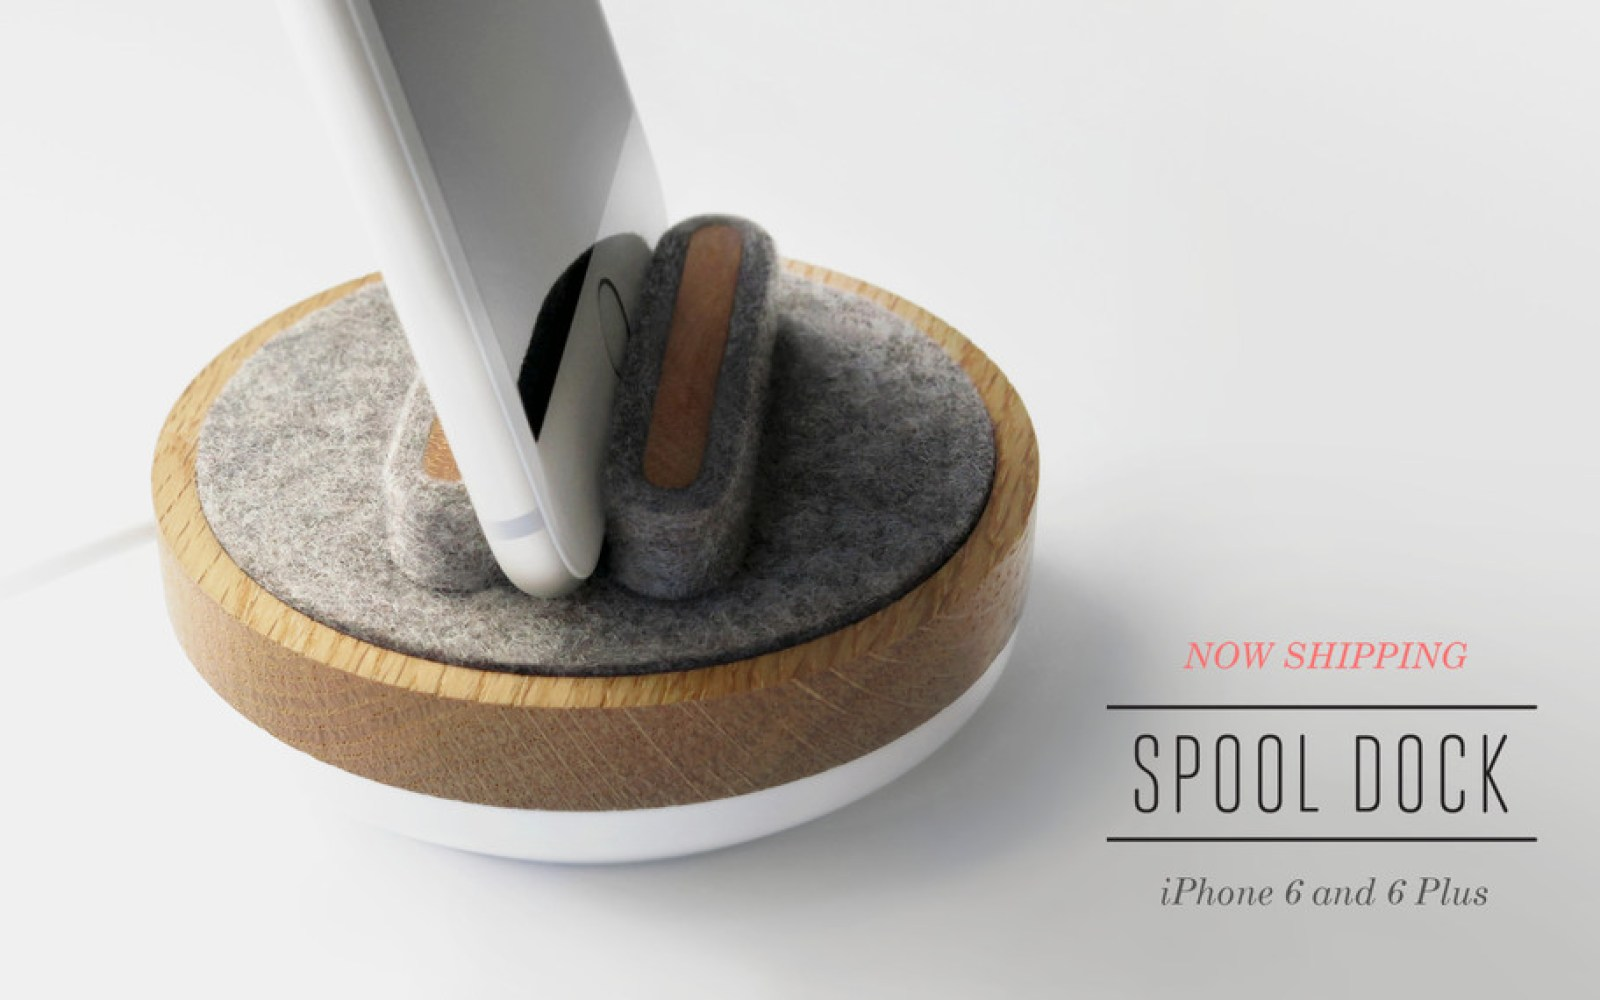 American made iPhone 6/6 Plus Spool Dock from Quell & Co. takes a different approach to its style